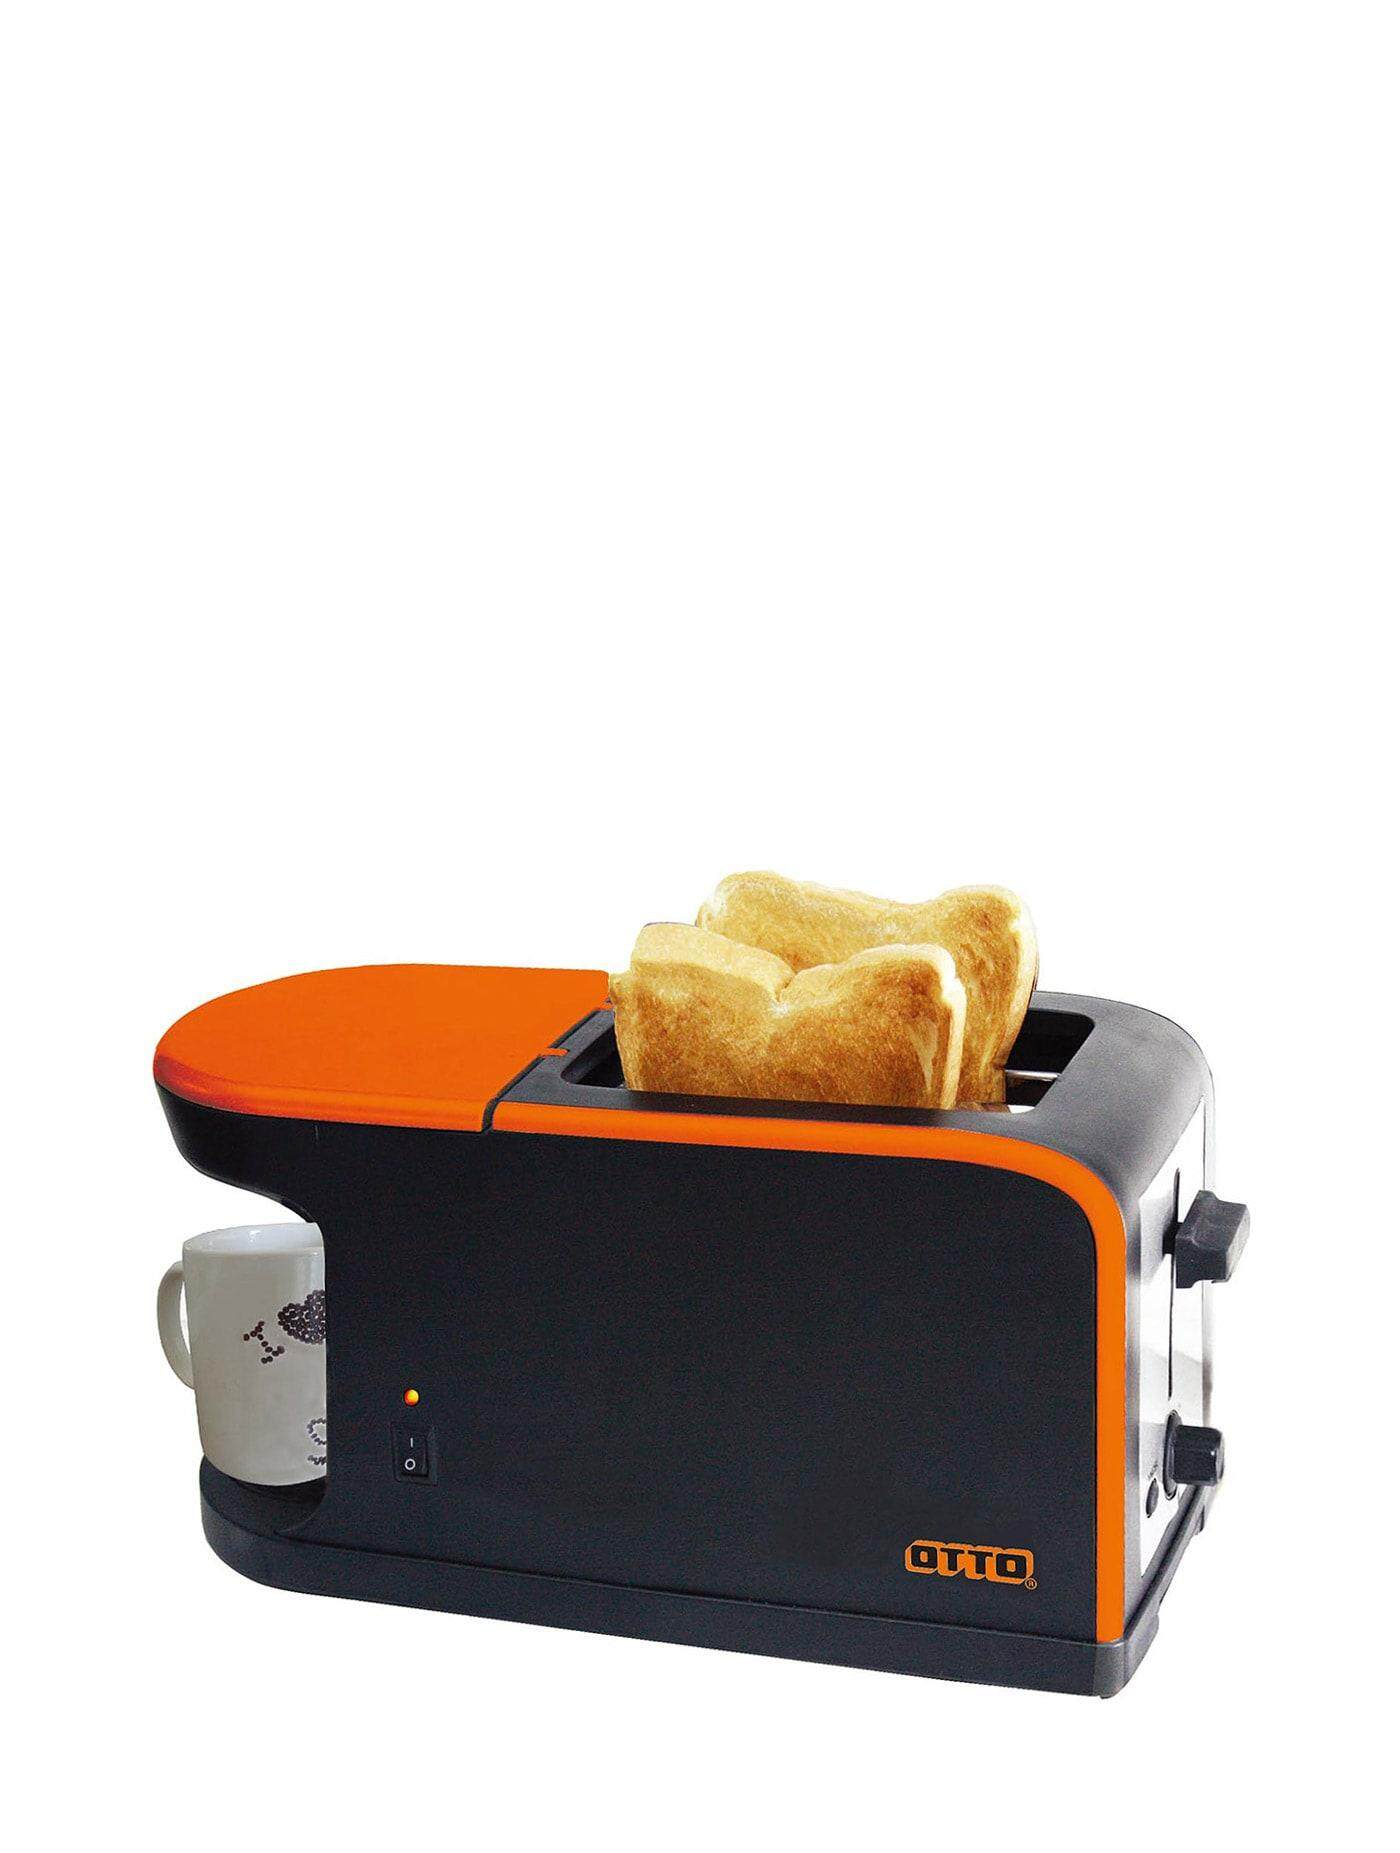 ยี่ห้อไหนดี  นครพนม OTTO Toaster and Coffee Maker Orange toasters sandwich makers